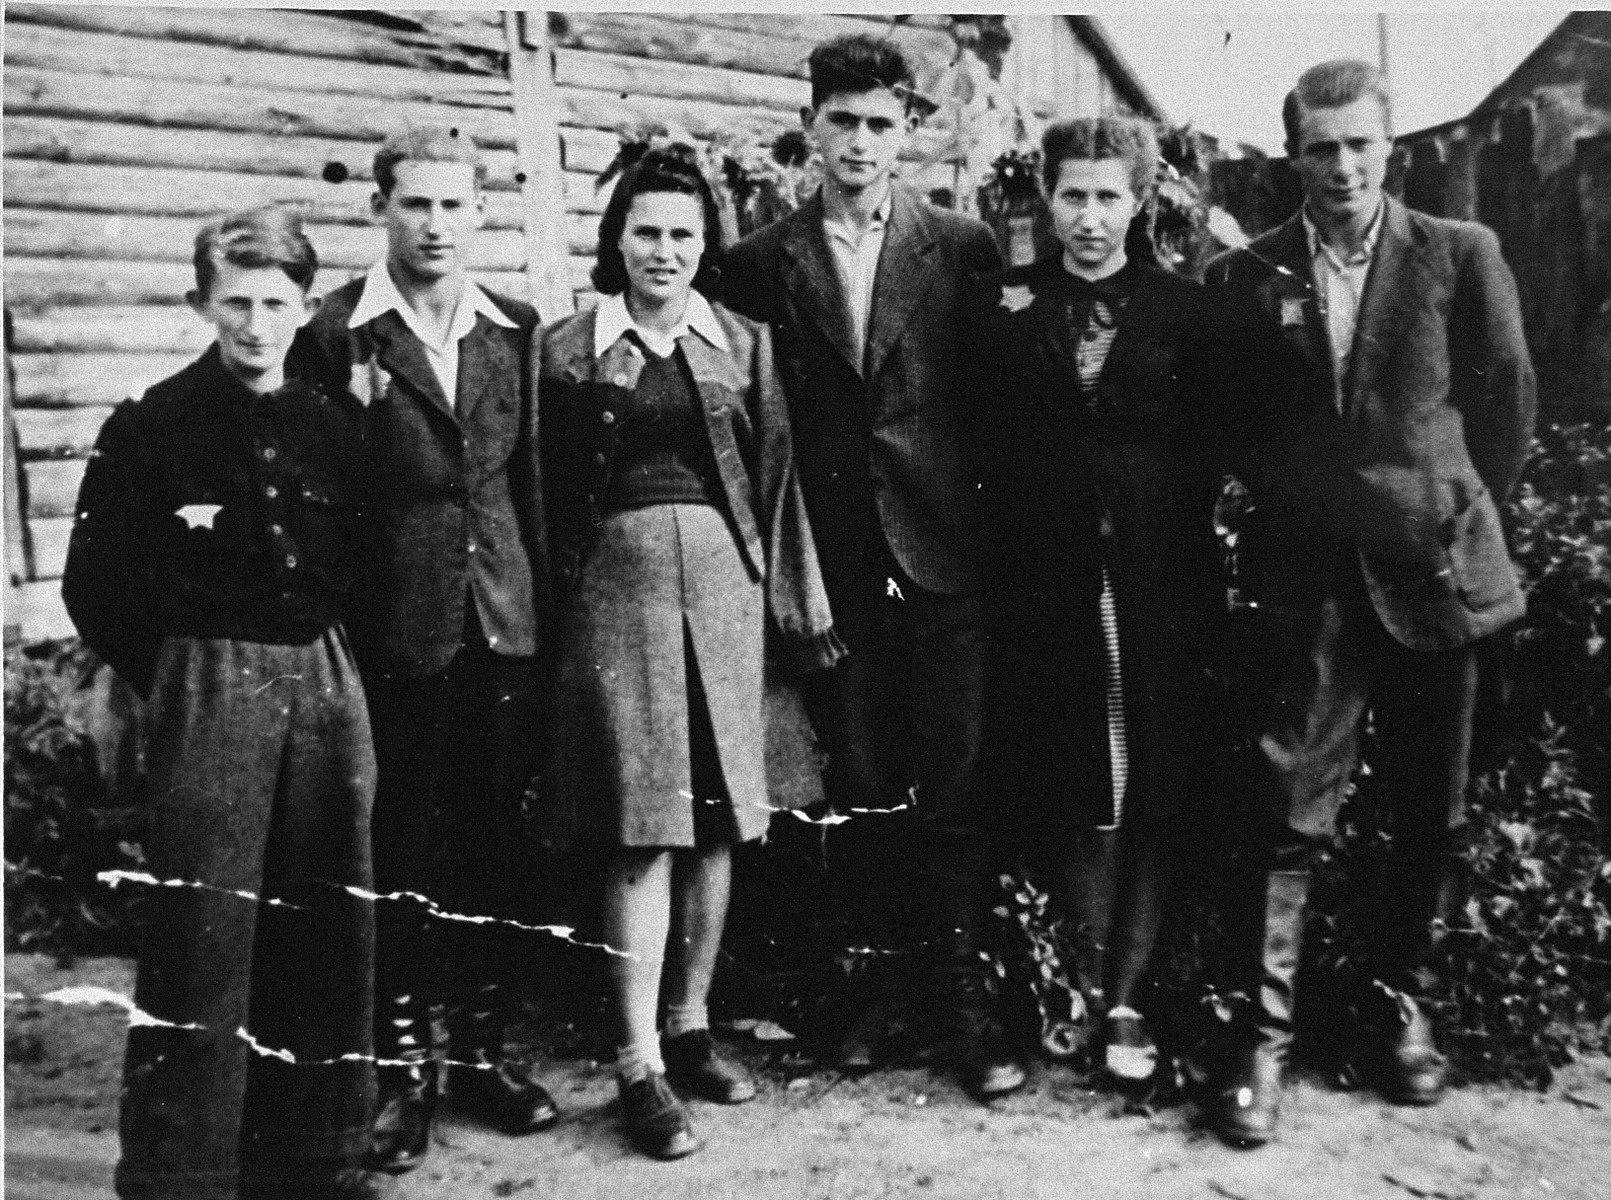 Group portrait of Jewish youth in the Kovno ghetto, who were involved in the underground.    Pictured from left to right are:  Zalman Holtzberg, Samuel Ingel, Leah Port, David Goldin, Esther Labonowski and Israel Goldblatt.